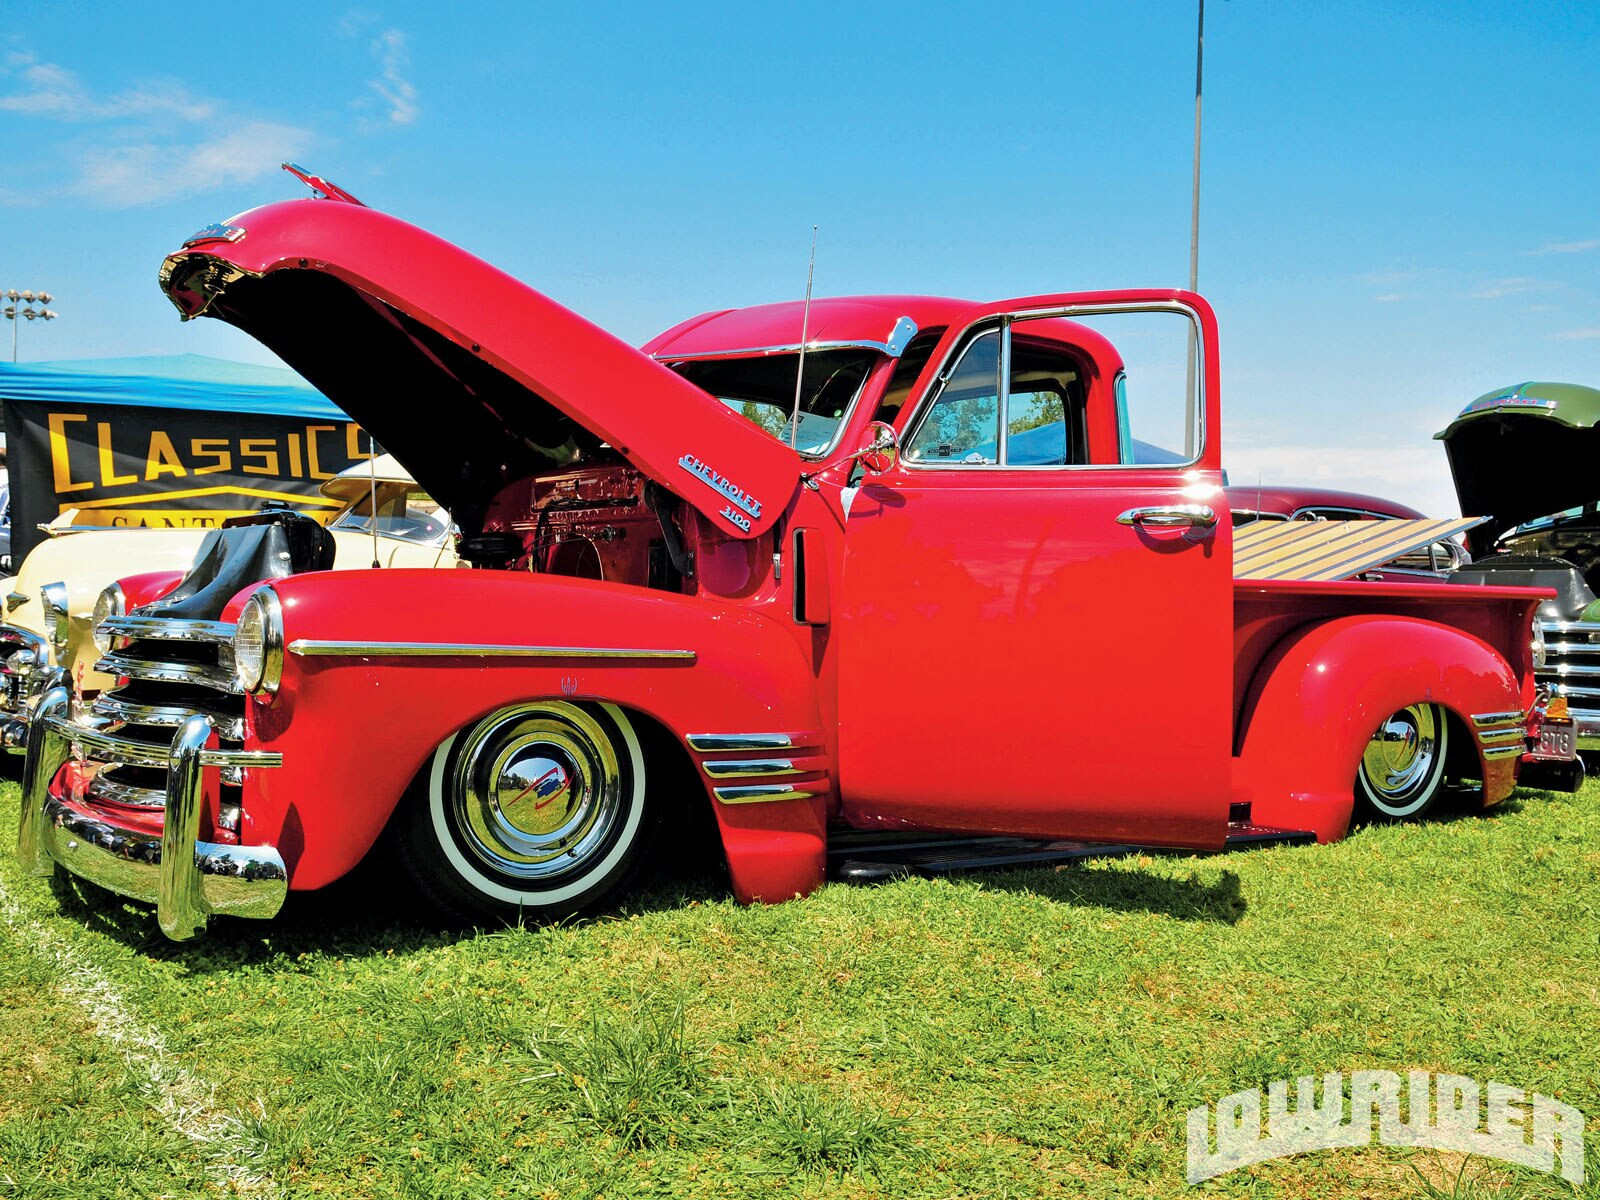 Lowrider Cars And Trucks Red | www.pixshark.com - Images ...